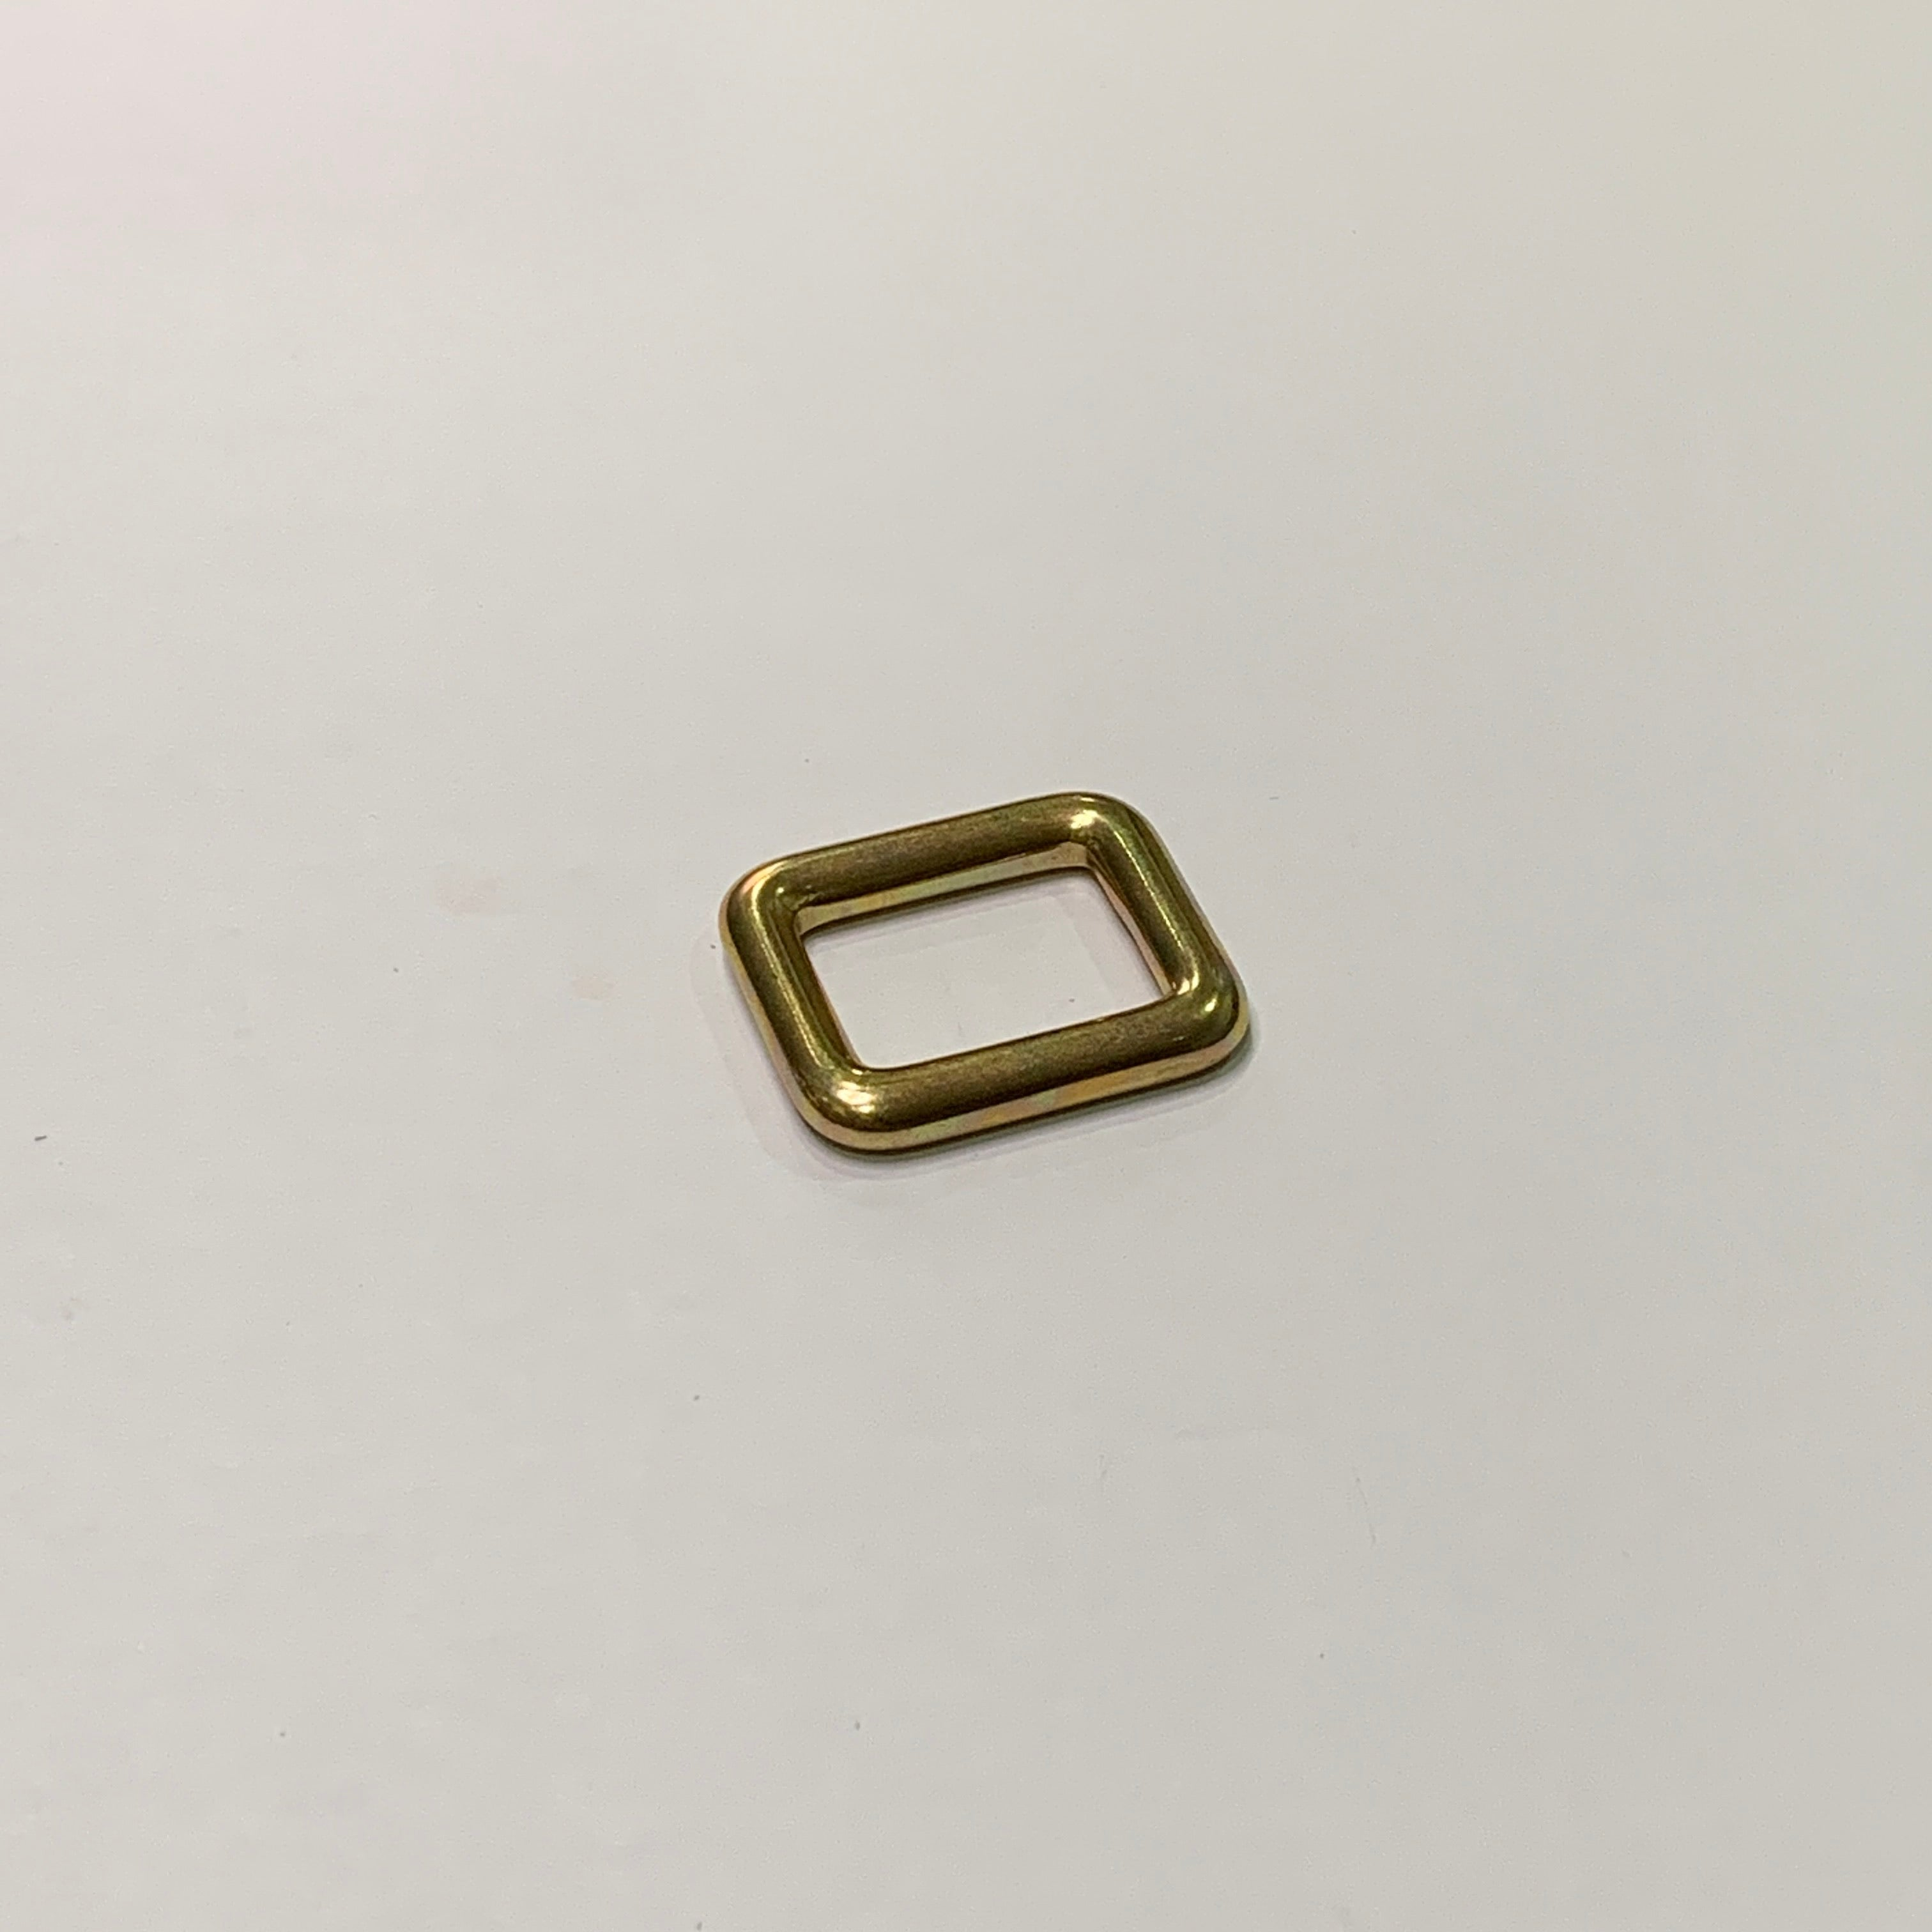 20mm Brass Square Ring